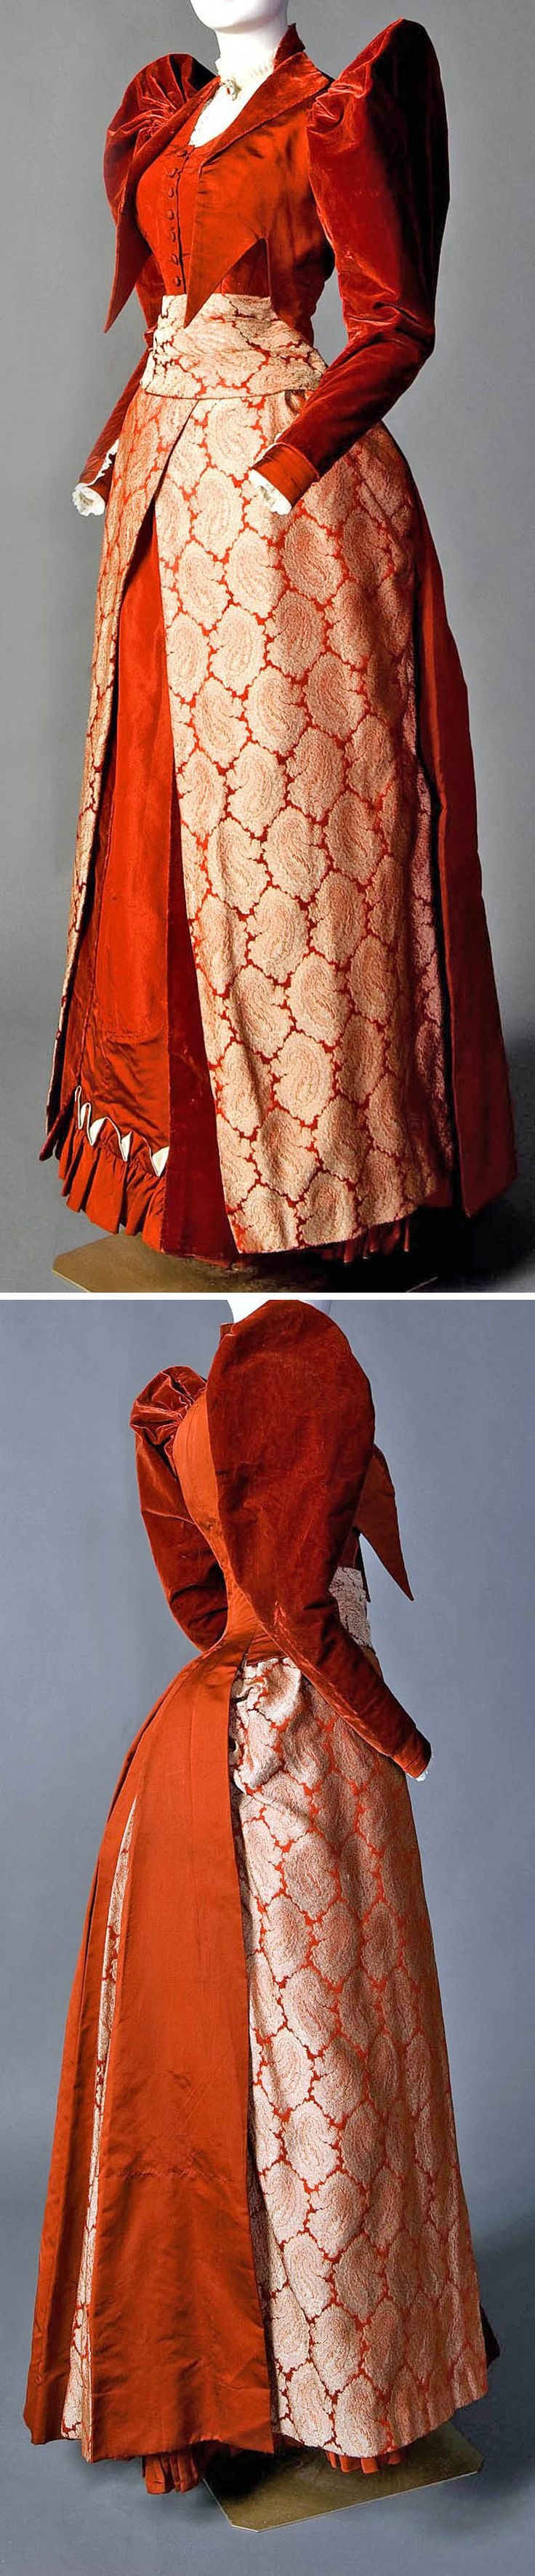 "Two-piece day ensemble, Mme. Lambele de St. Omer, New York, ca. 1891-92. Rust red silk faille, velvet,  brocade. Peaked sleeve cap identifies dress as early 1890s. It has grown as bustle has shrunk. Bodice is a ""tailor-made,"" with revers (lapels), tail, suggested waistcoat (vest),  high-collared white neck insert. Skirt falls smoothly over hips, flaring at base. Modified bustle of steel  ties built into back of skirt. Smith College Historic Clothing"